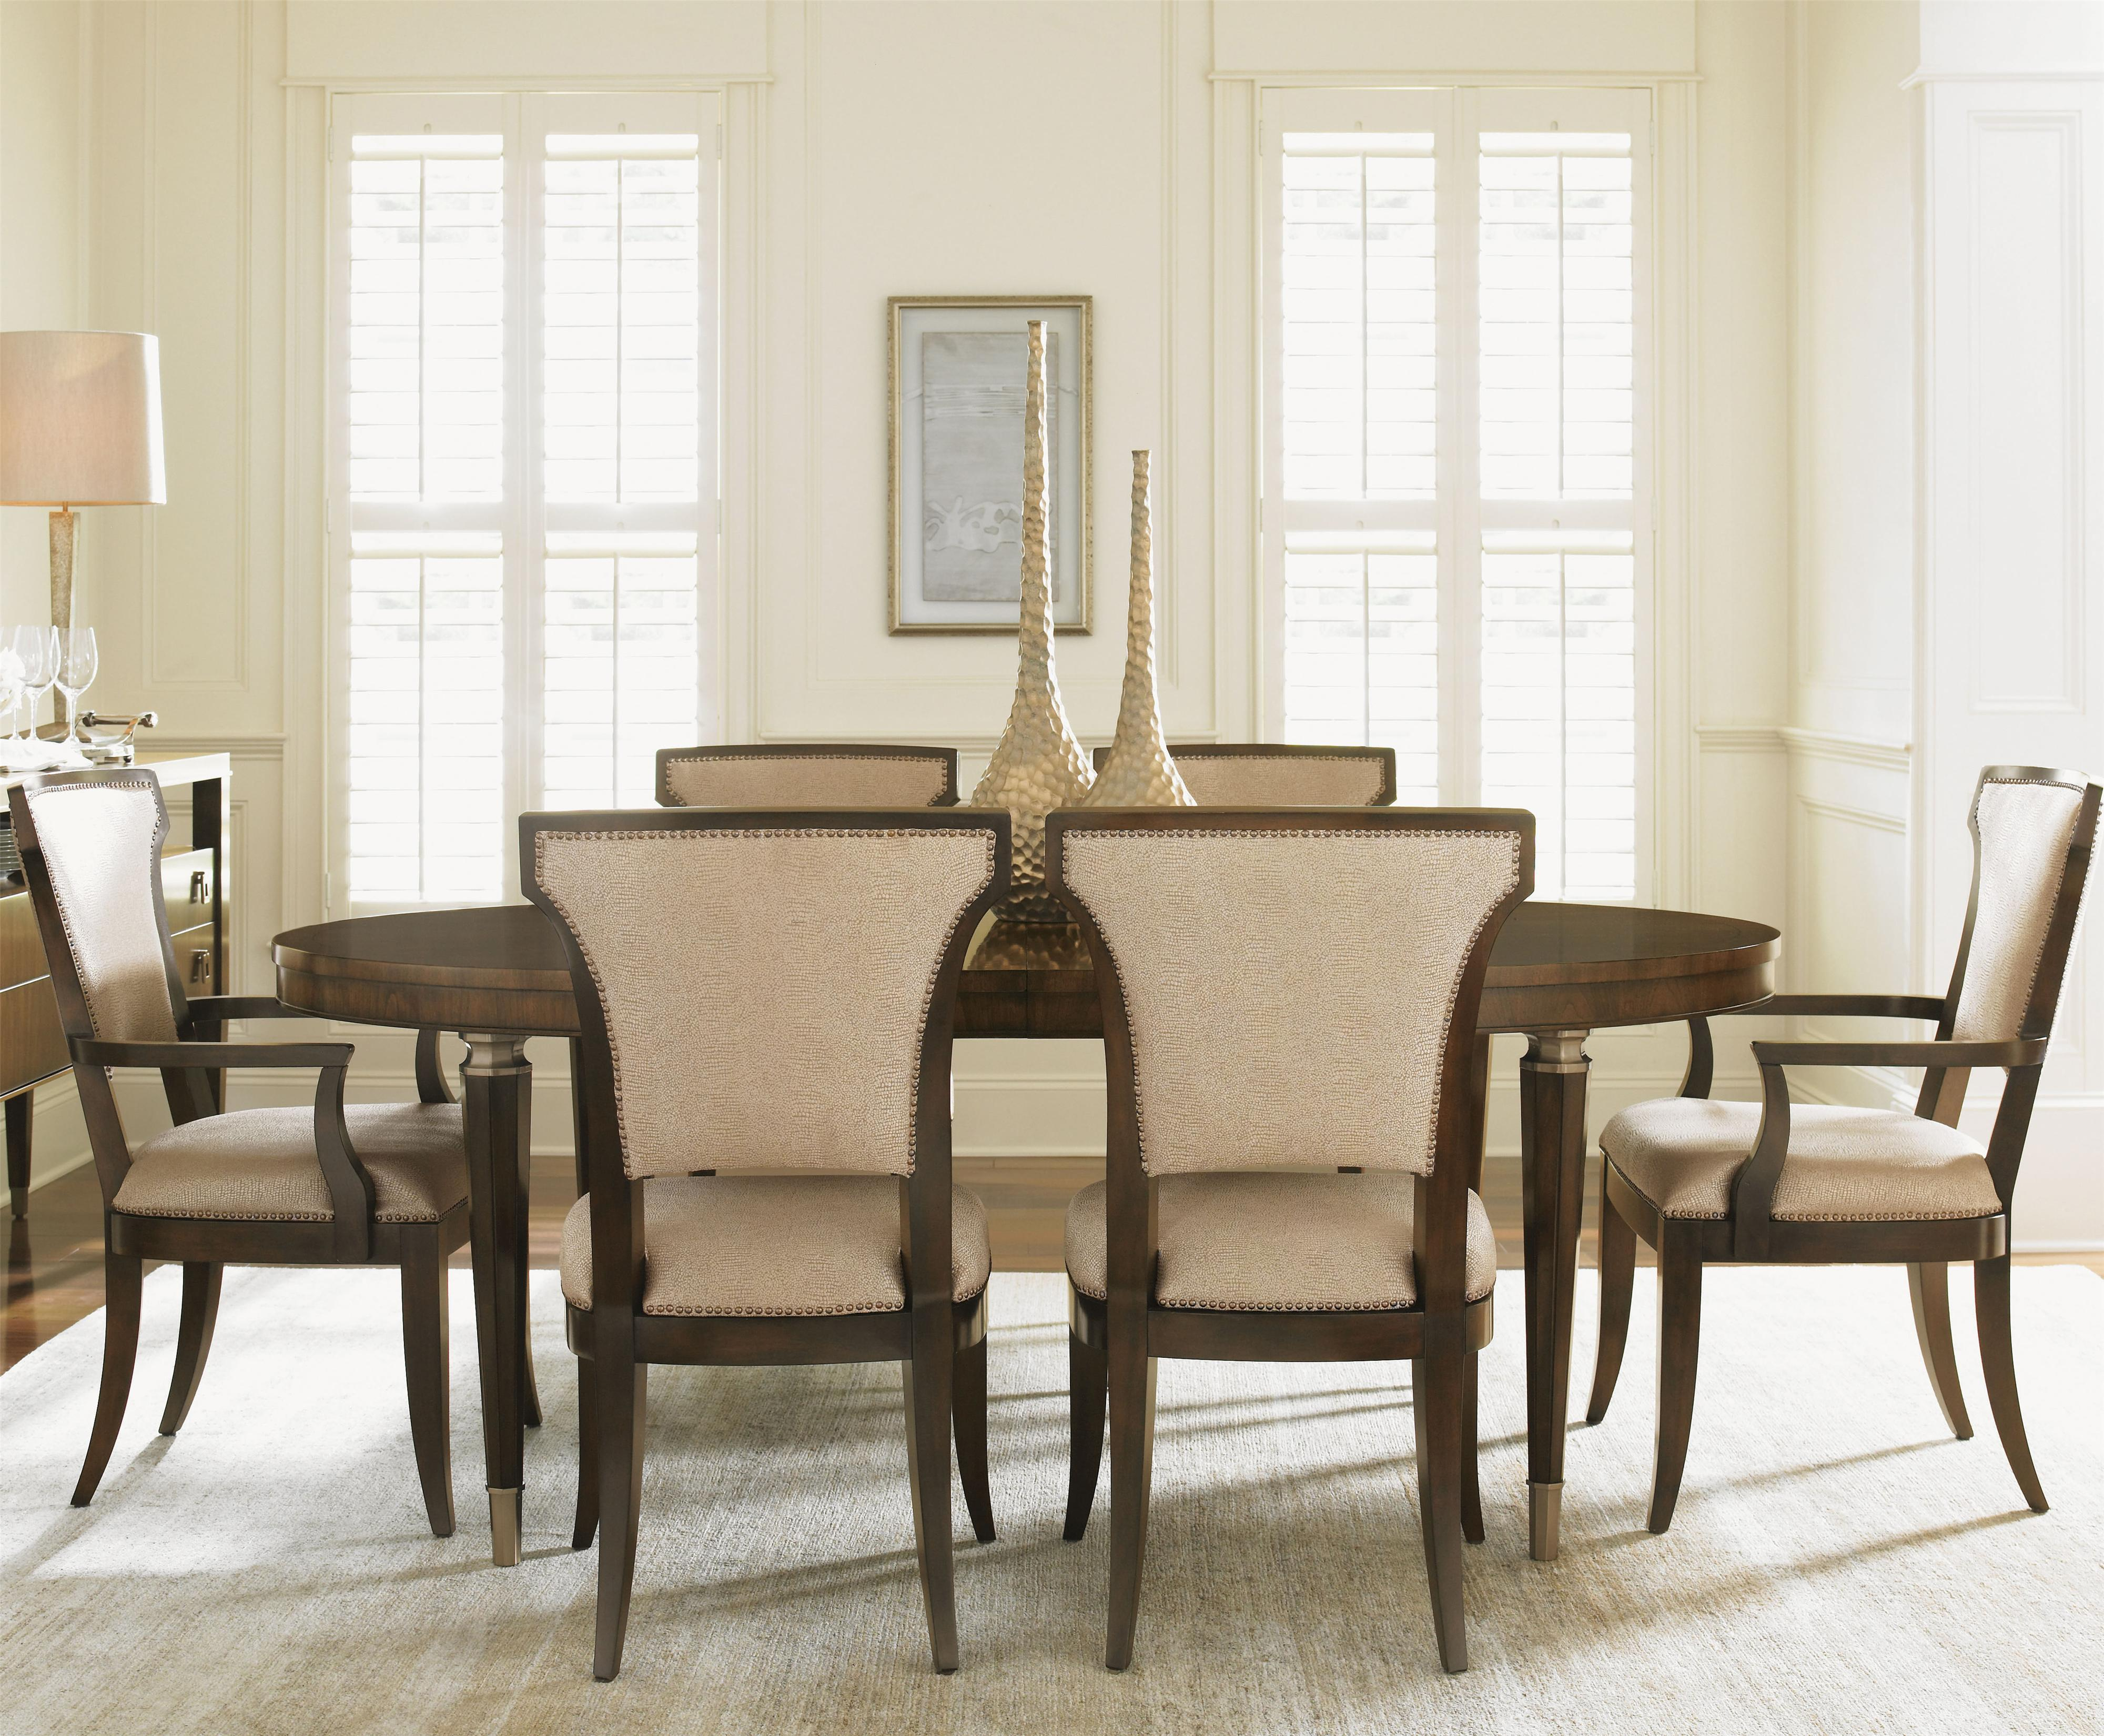 Tower Place 7 Piece Dining Set with Drake Table by Lexington at Johnny Janosik